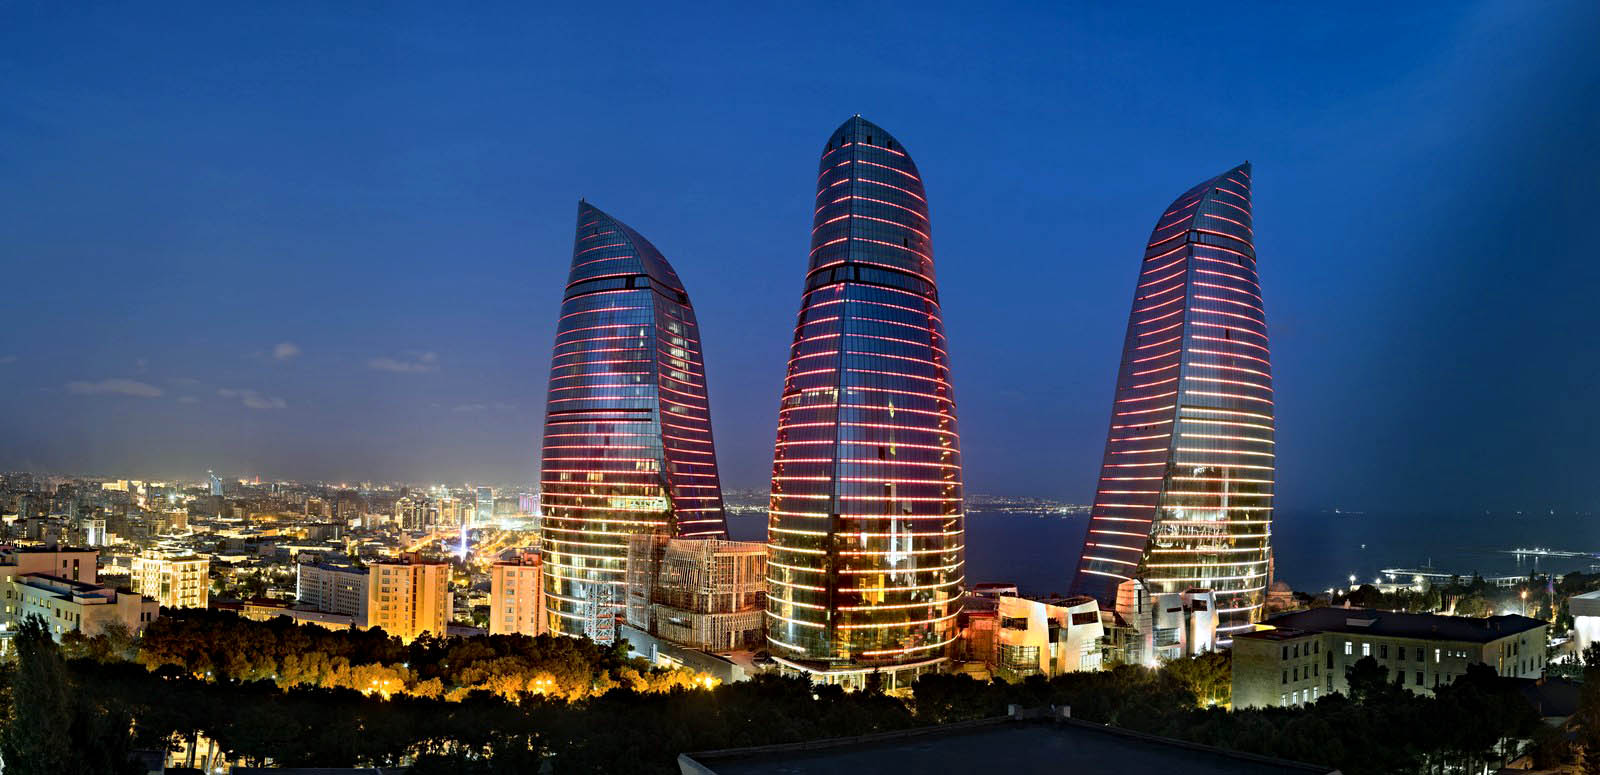 Completed in 2012, the Flame Towers are the tallest skyscrapers in Baku. © Niyaz from Baku